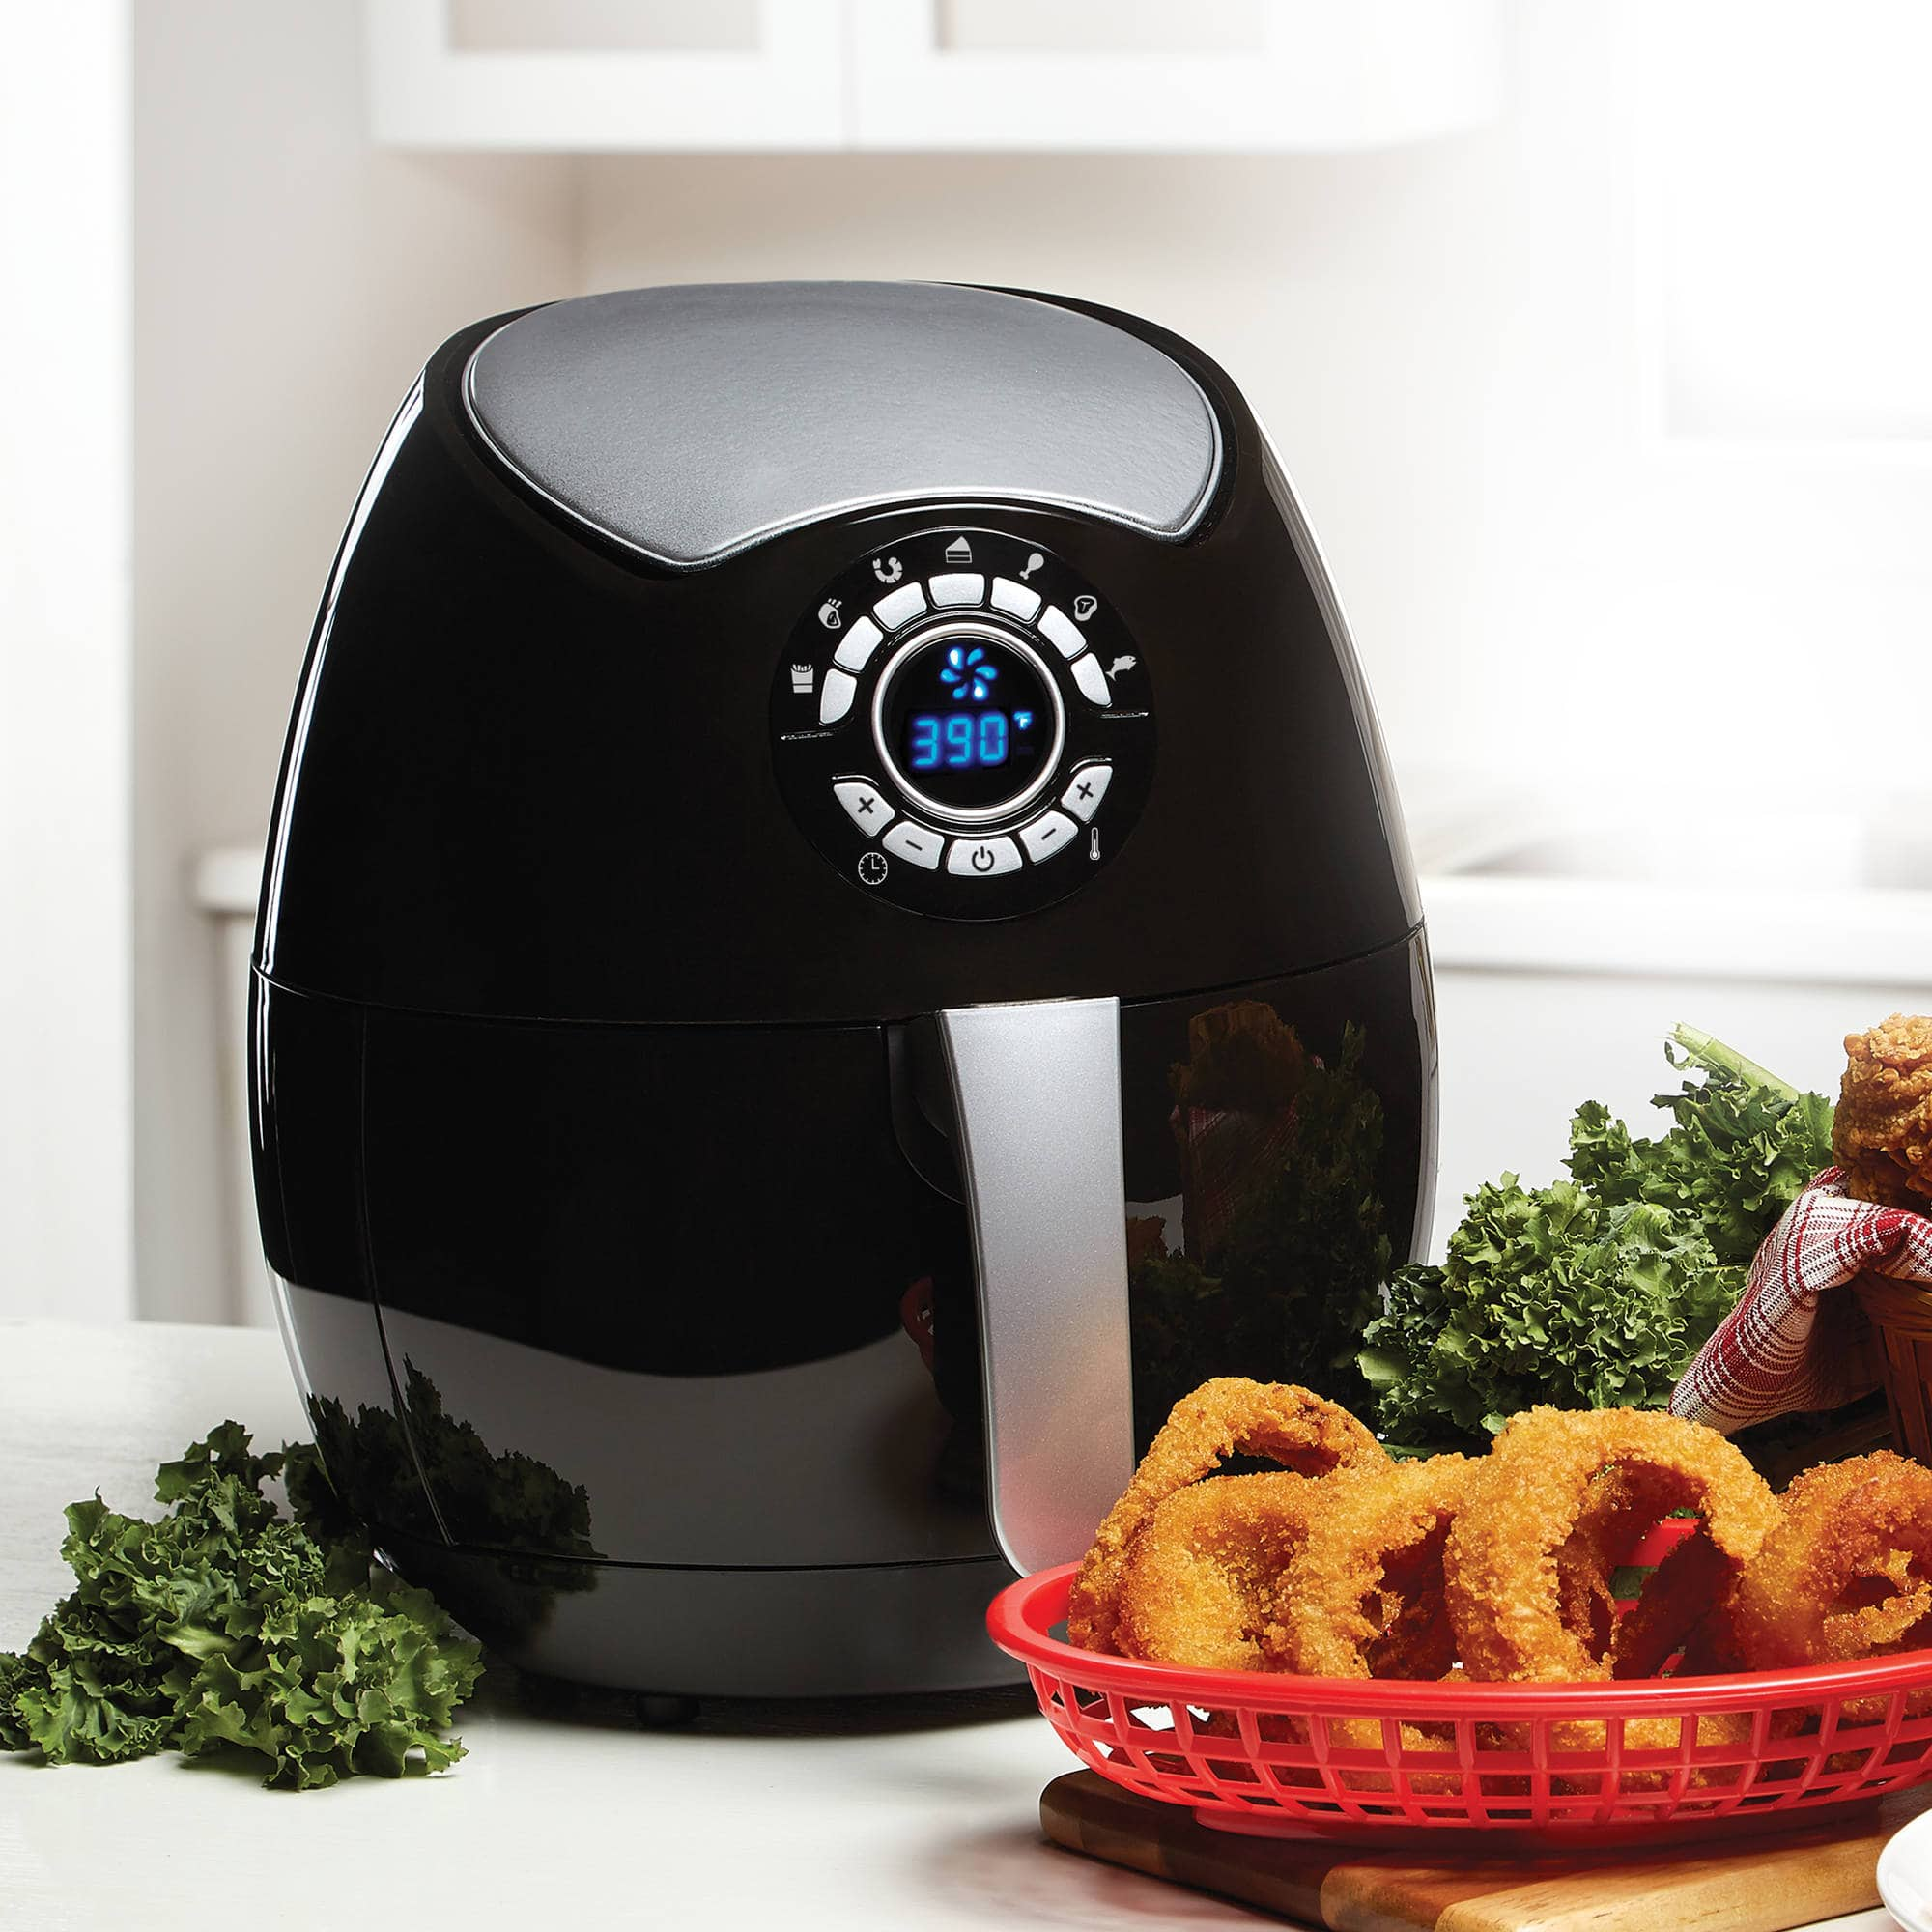 Tristar Power 3.4 Quart AirFryer XL $53.63